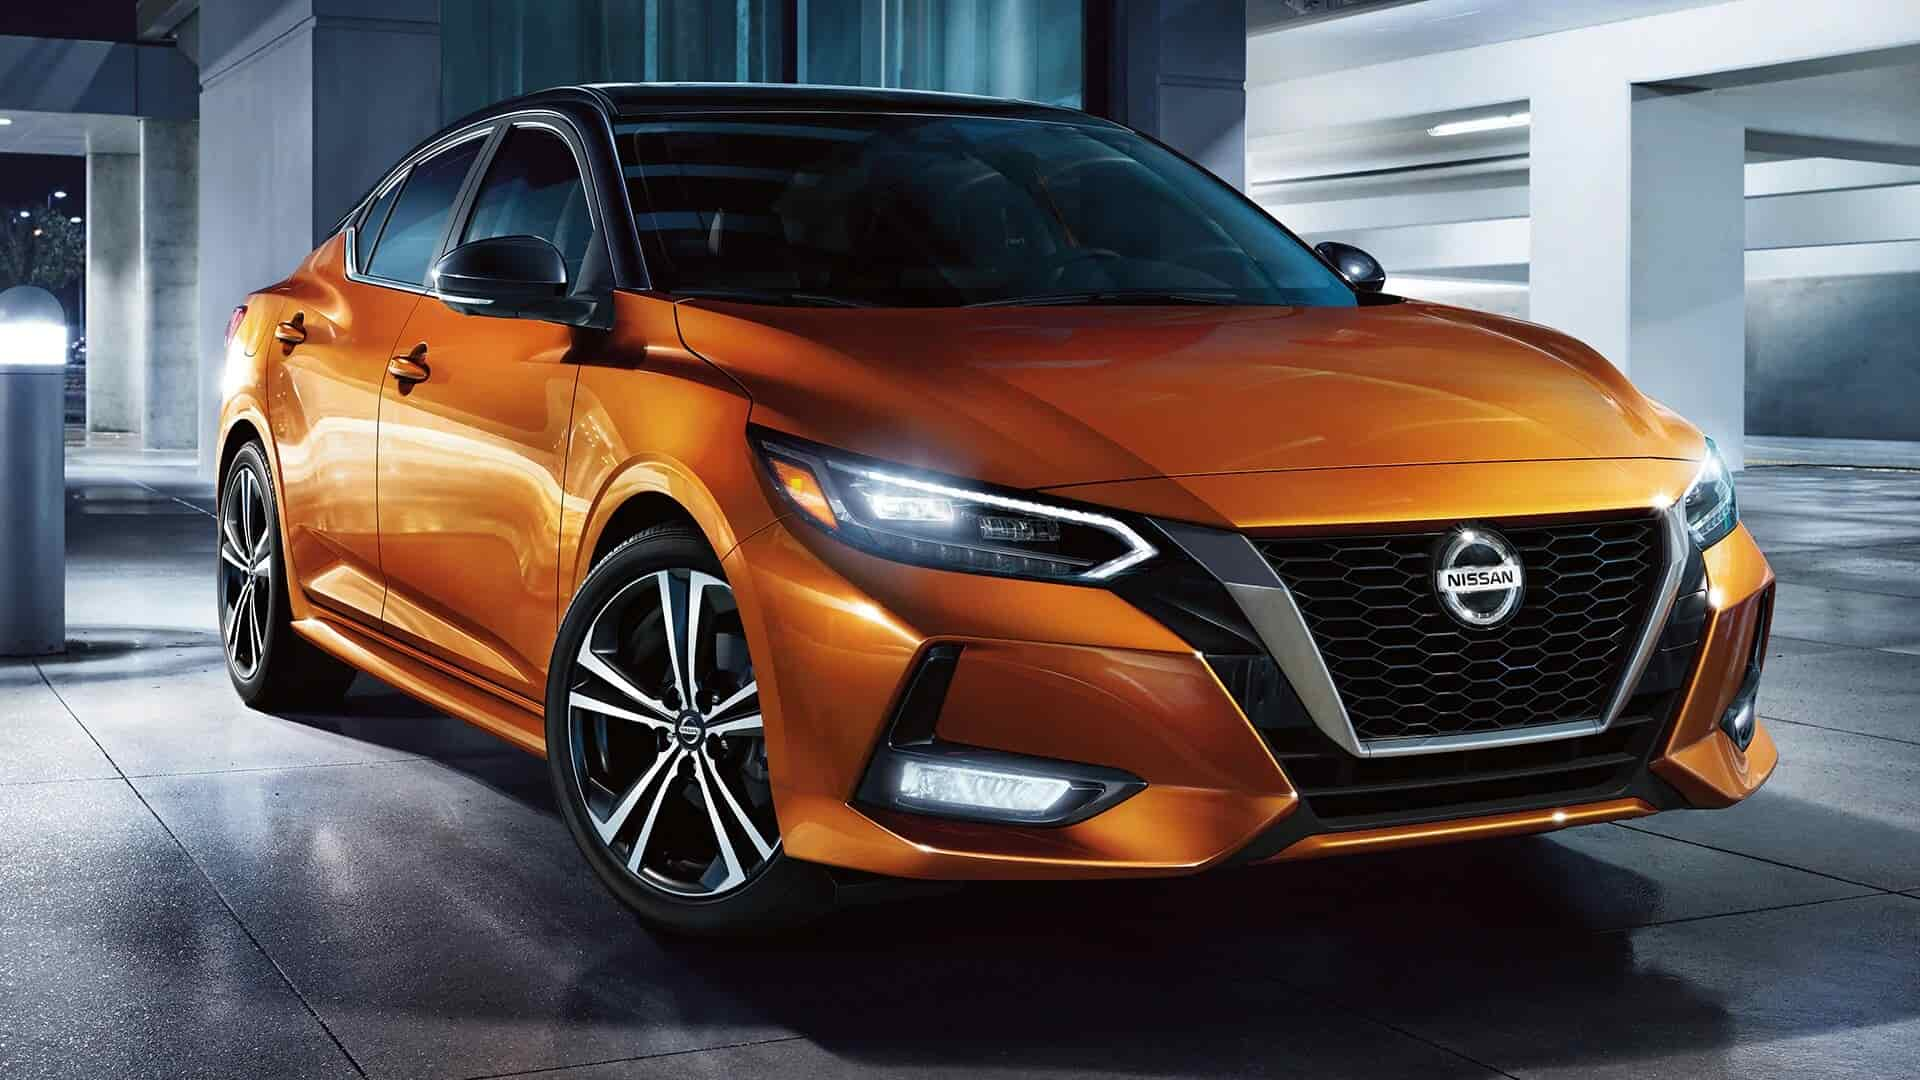 New 2020 Nissan Sentra has arrived in Tustin CA